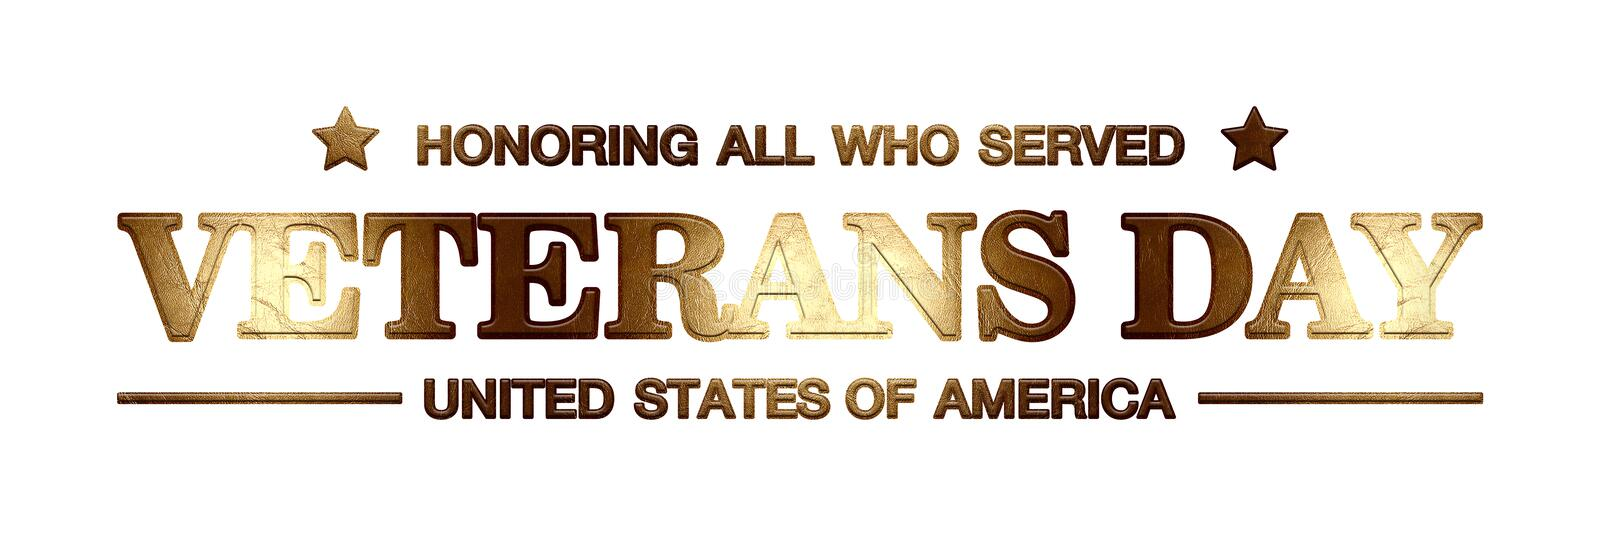 Logo Veterans Day libre illustration